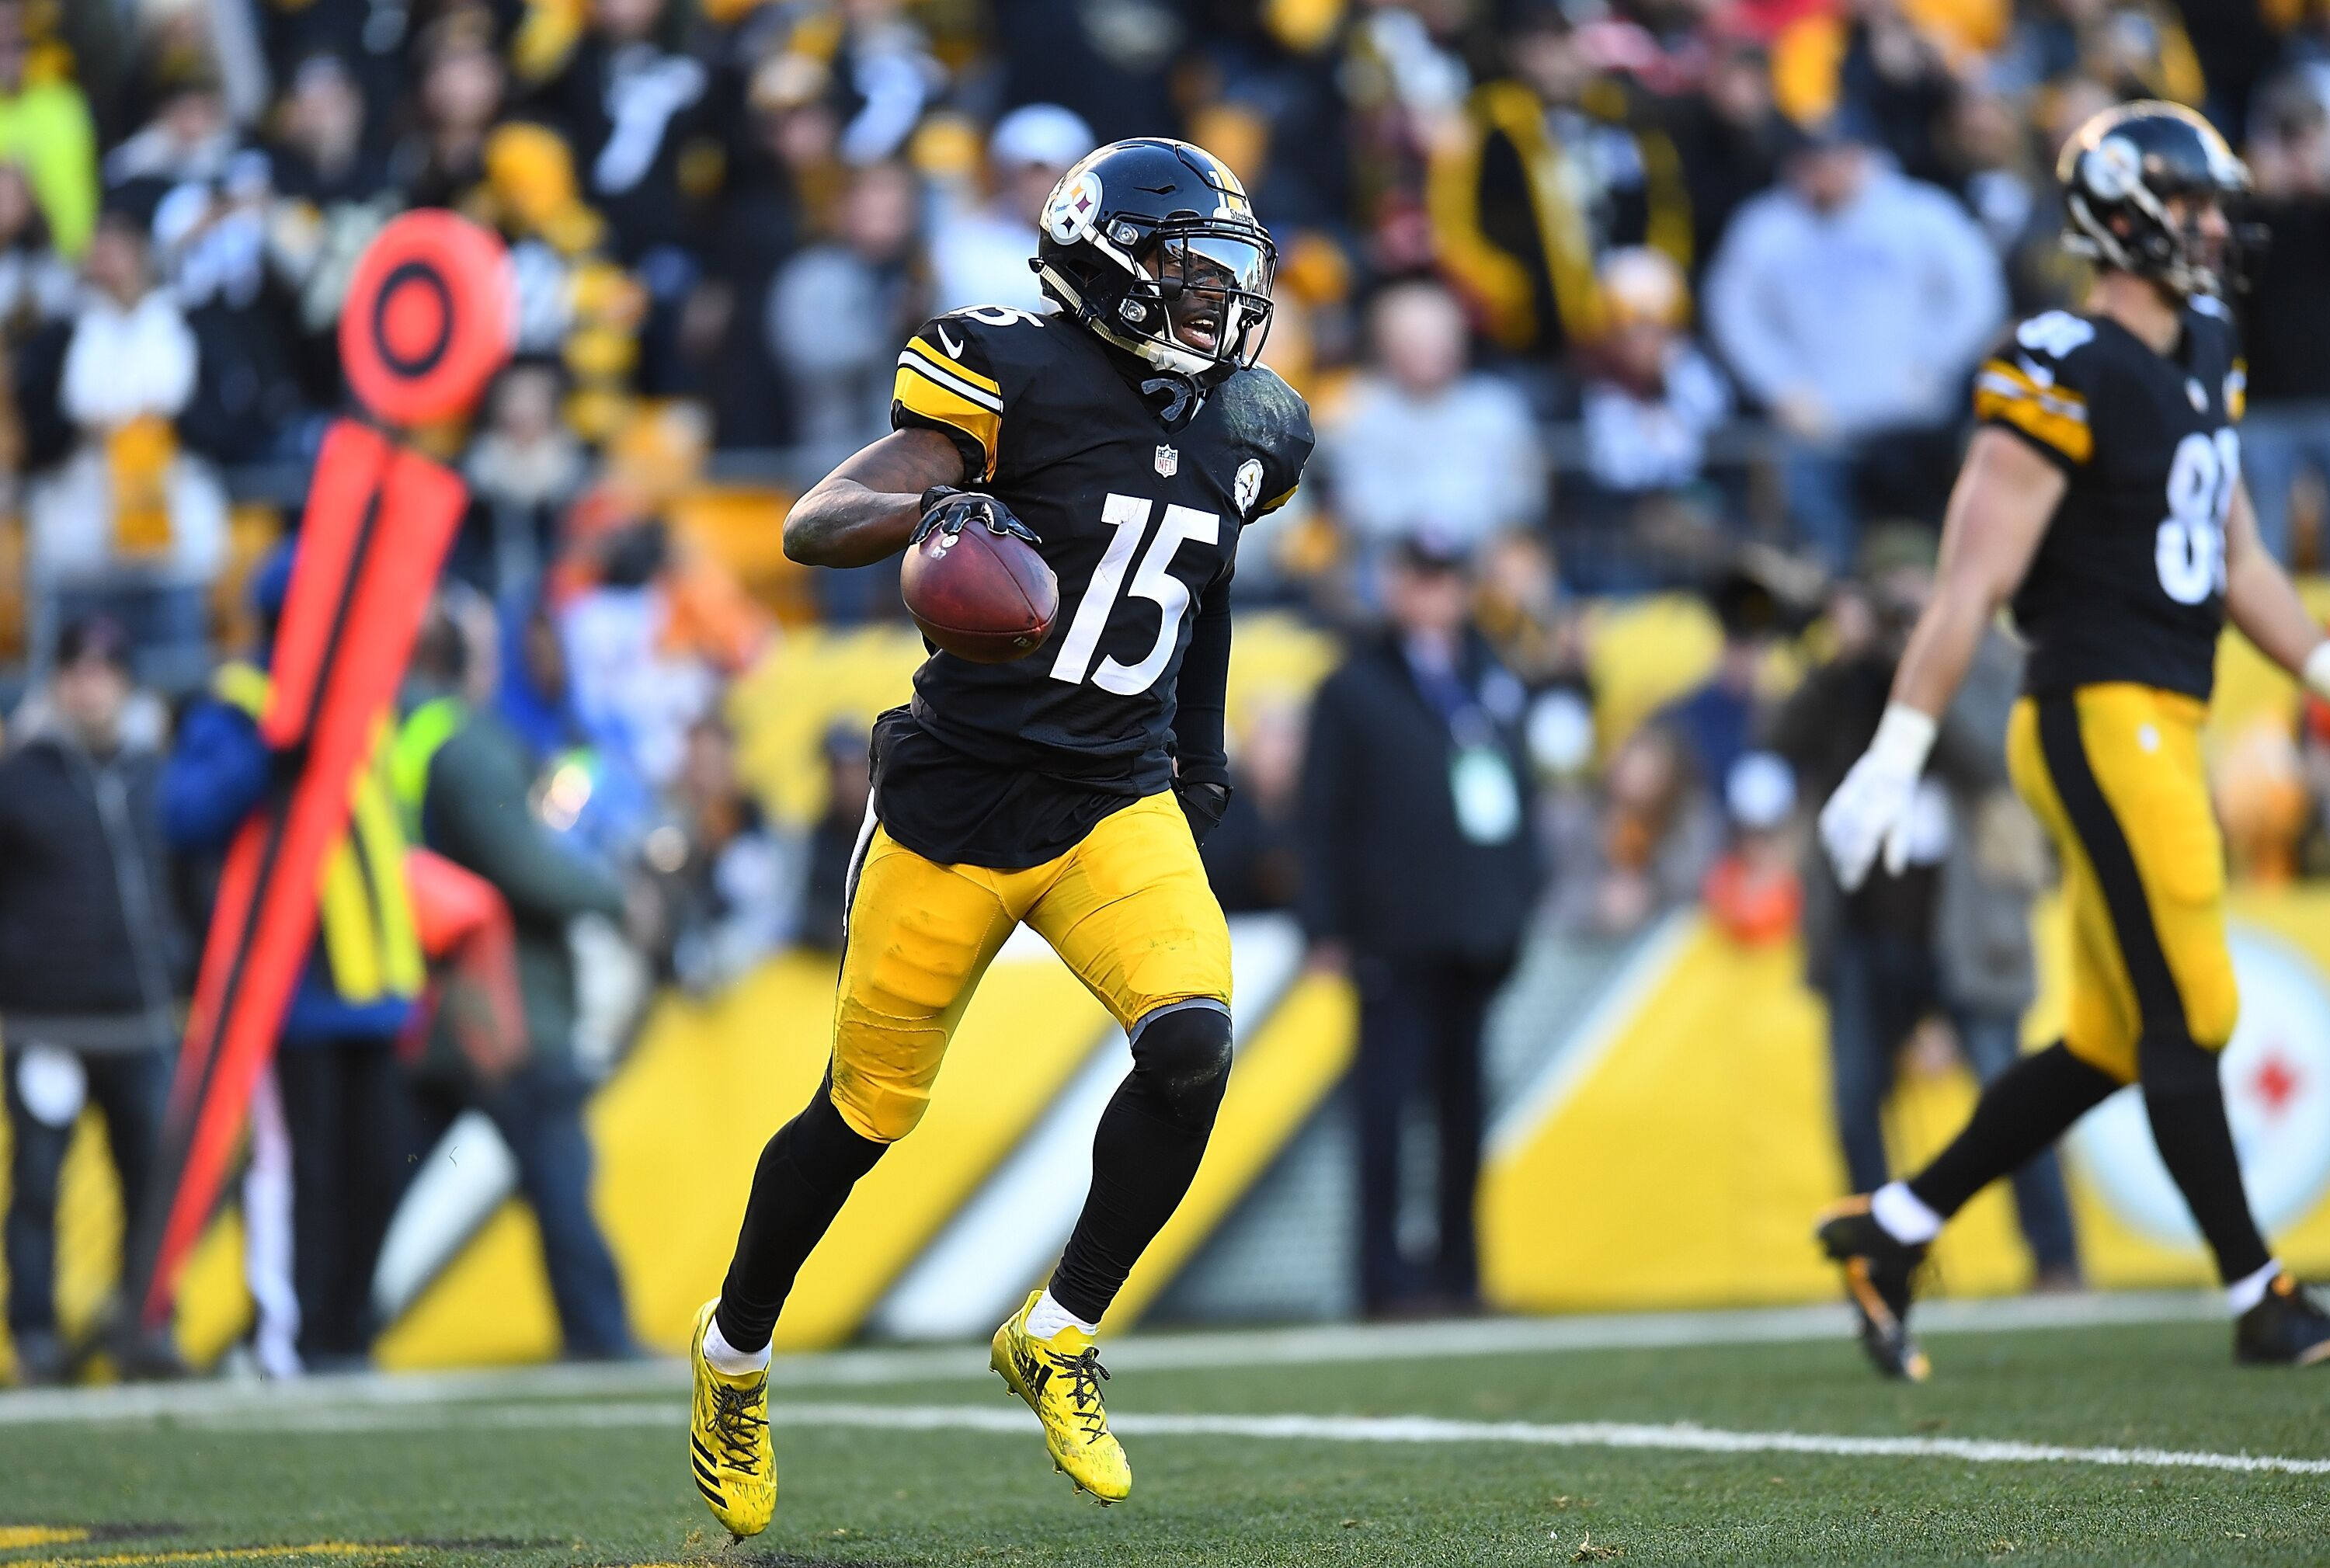 sneakers for cheap 78af0 0a036 Pittsburgh Steelers: Practice squad options for 2017